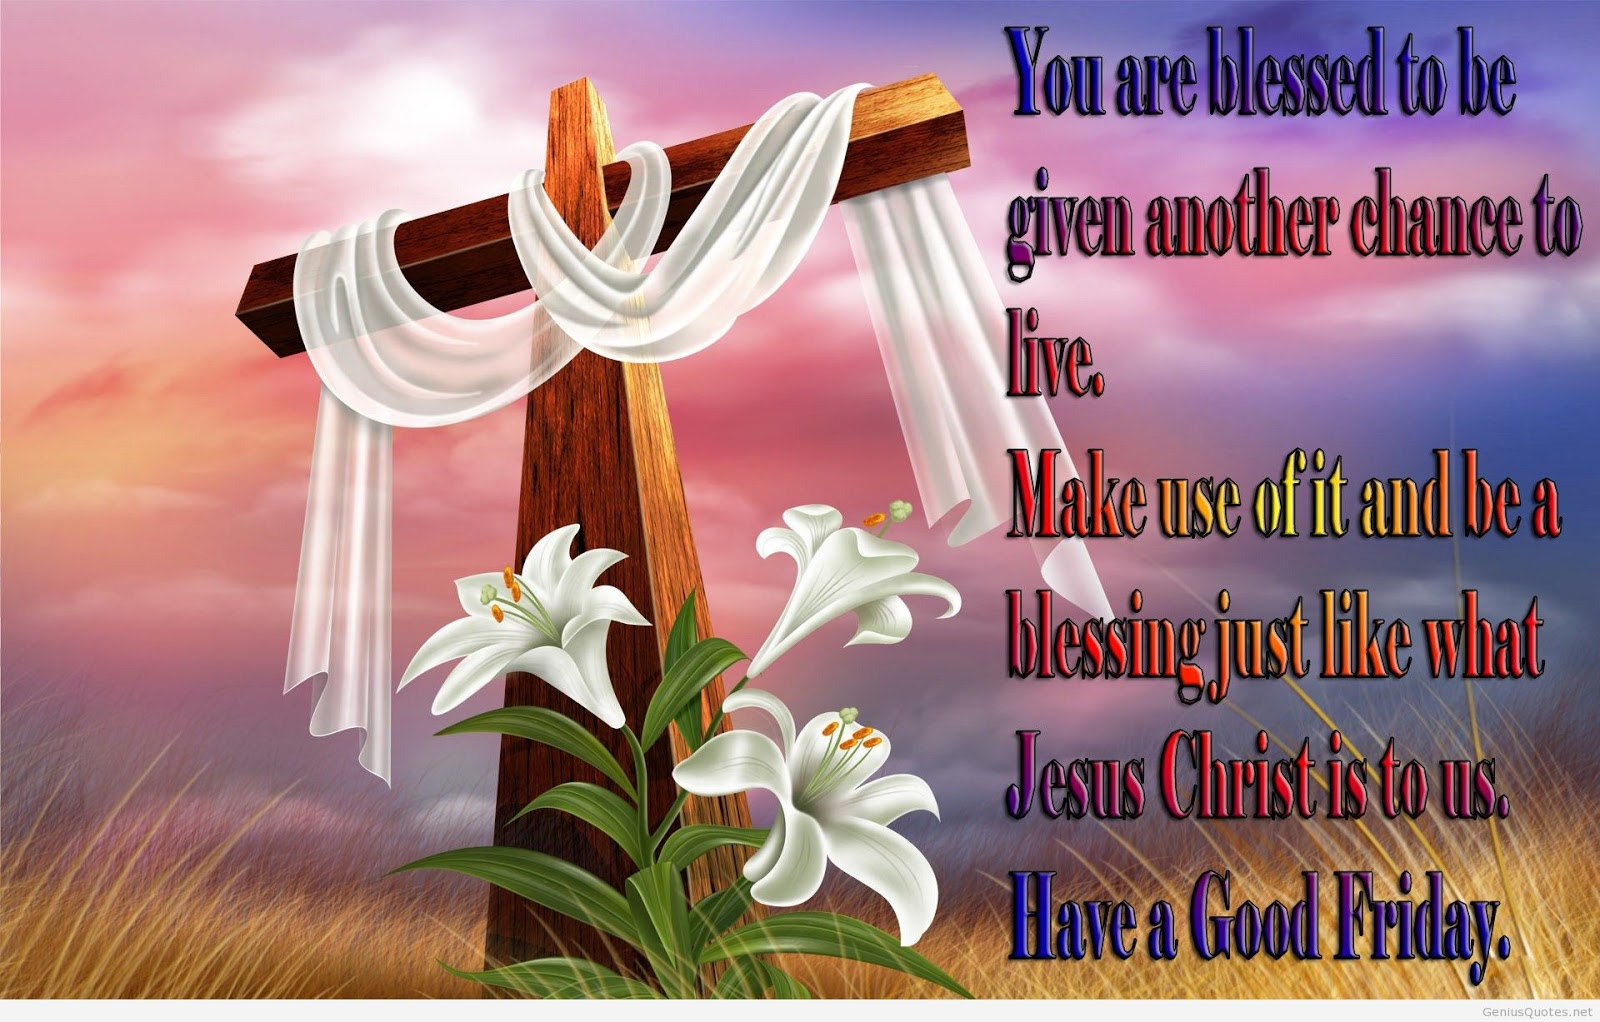 Happy Easter : We all are blessed : eAskme